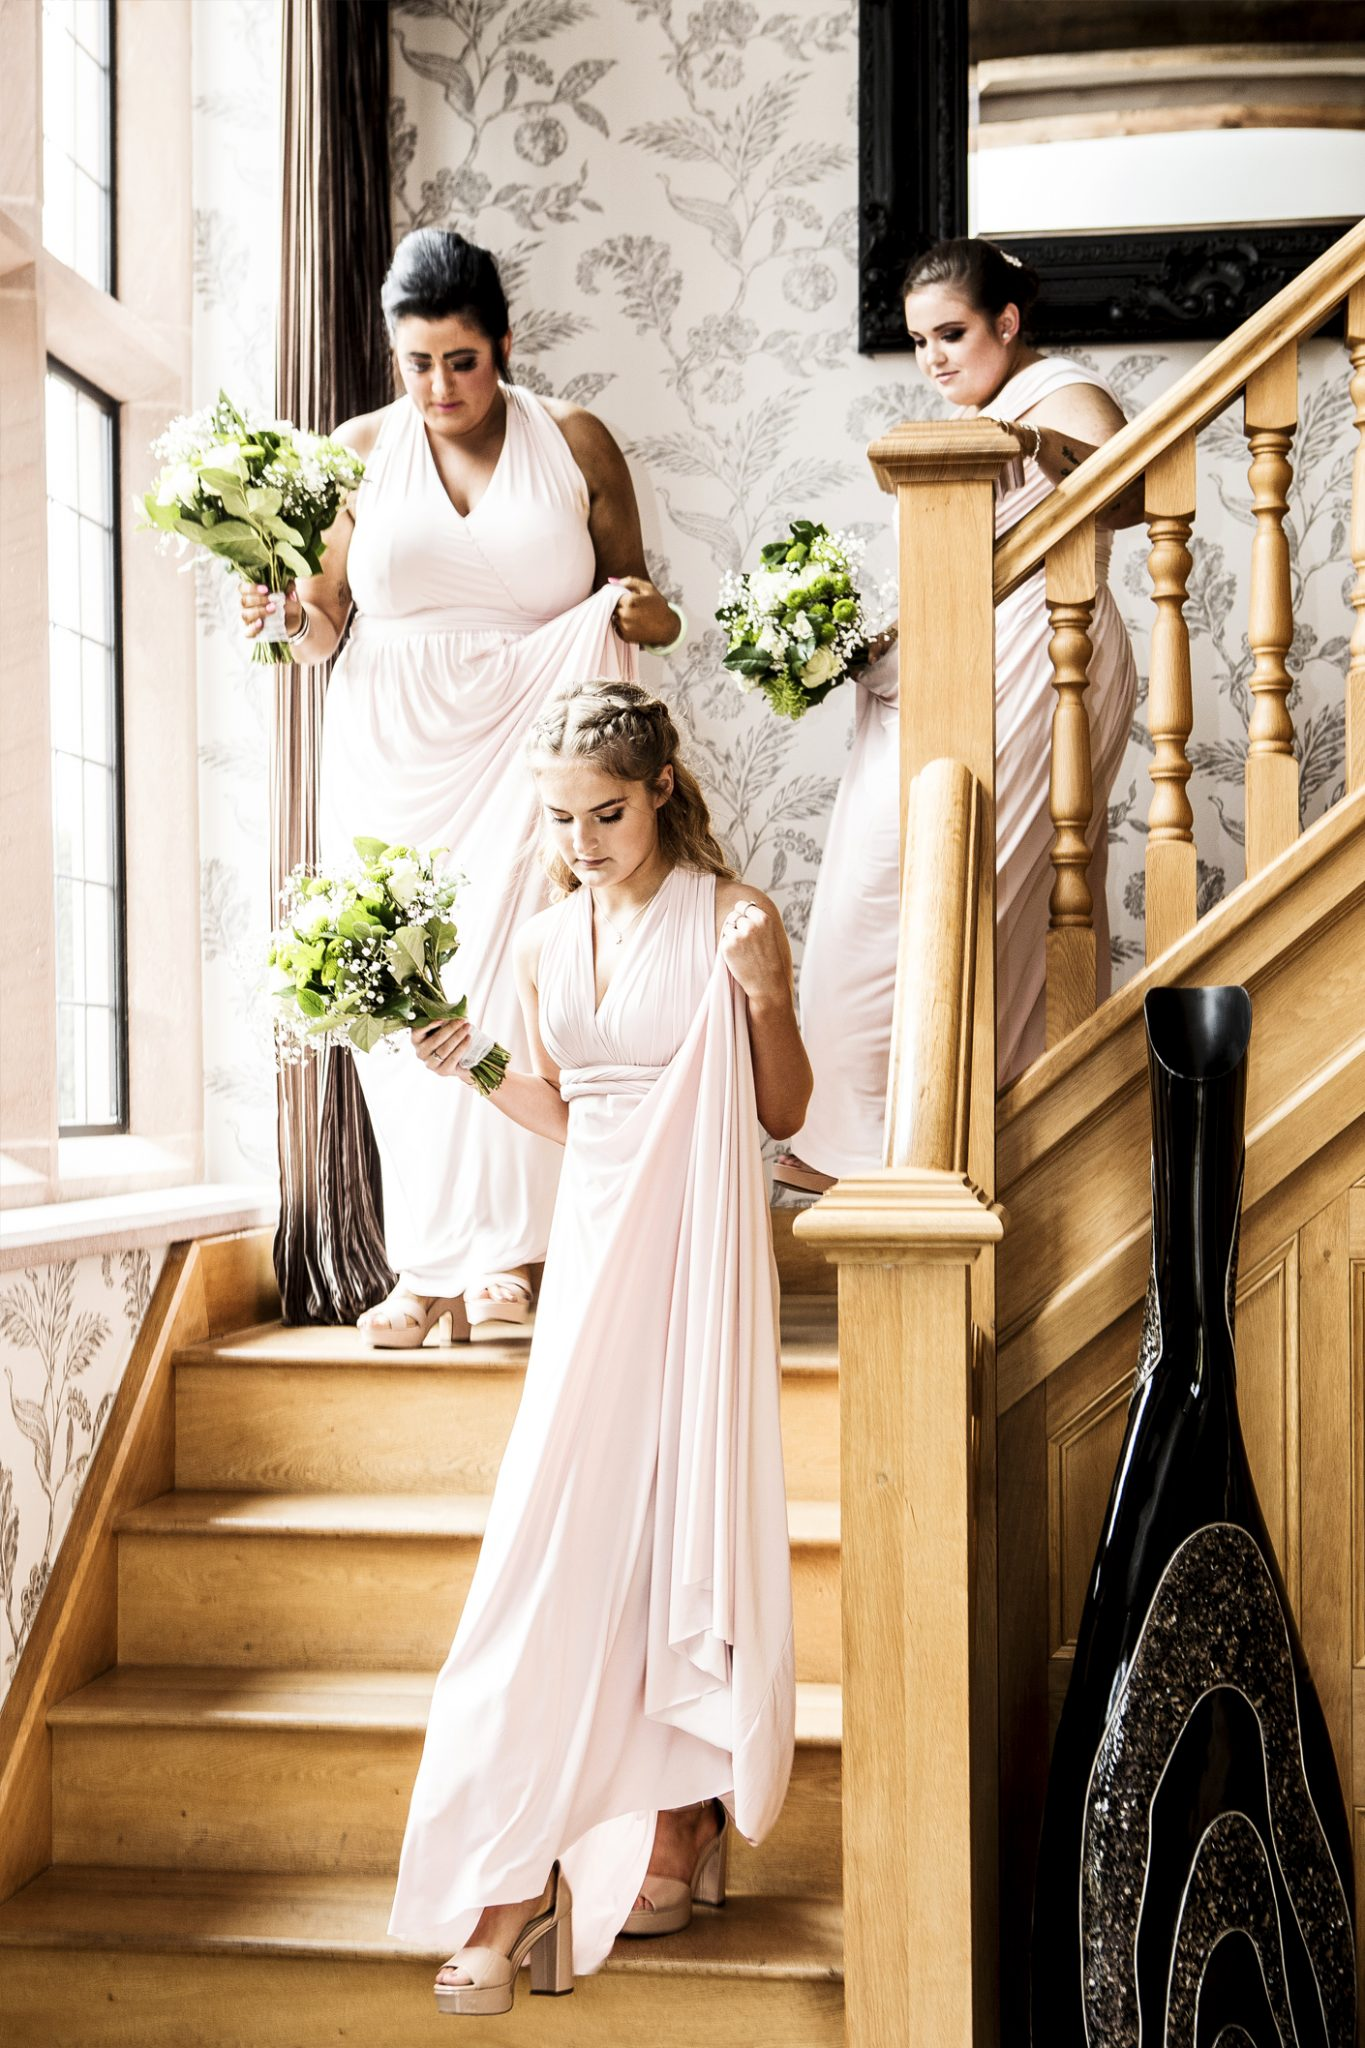 photography-of-the-bridesmaids-on-their-way-to-the-wedding-ceremony-at-merrydale-manor-knutsford-cheshire